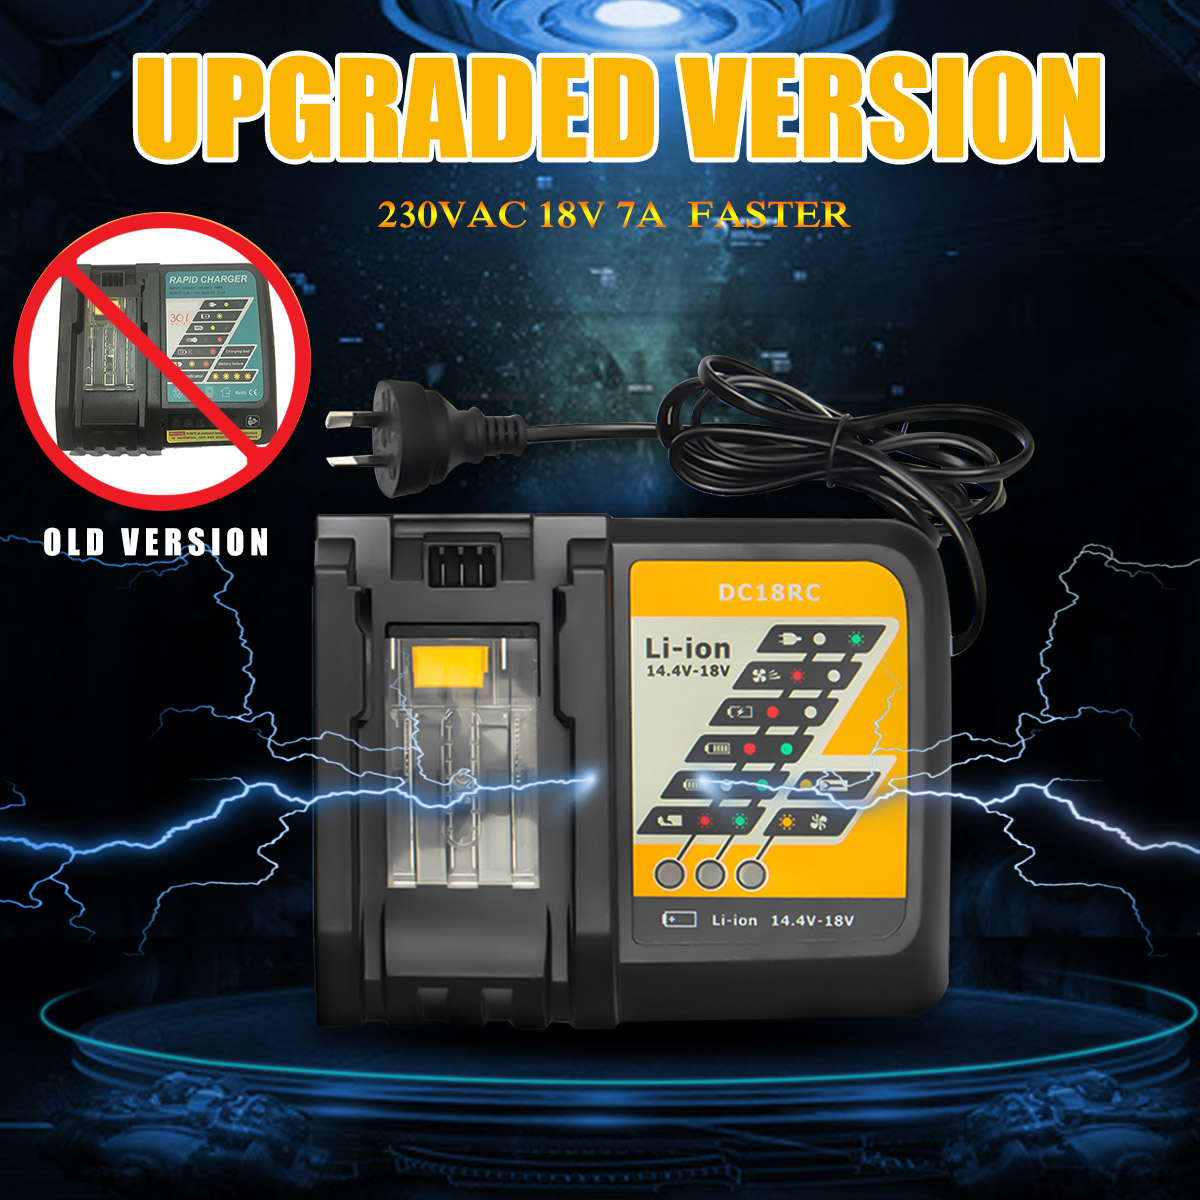 DC18RC Li-ion Battery Charger 7A Charging Current for Makita 14.4V 18V BL1830 BL1840 Replacement Power tool dawupine dc18rct li ion battery charger 3a 6a charging current for makita 14 4v 18v bl1830 bl1430 dc18rc dc18ra power tool